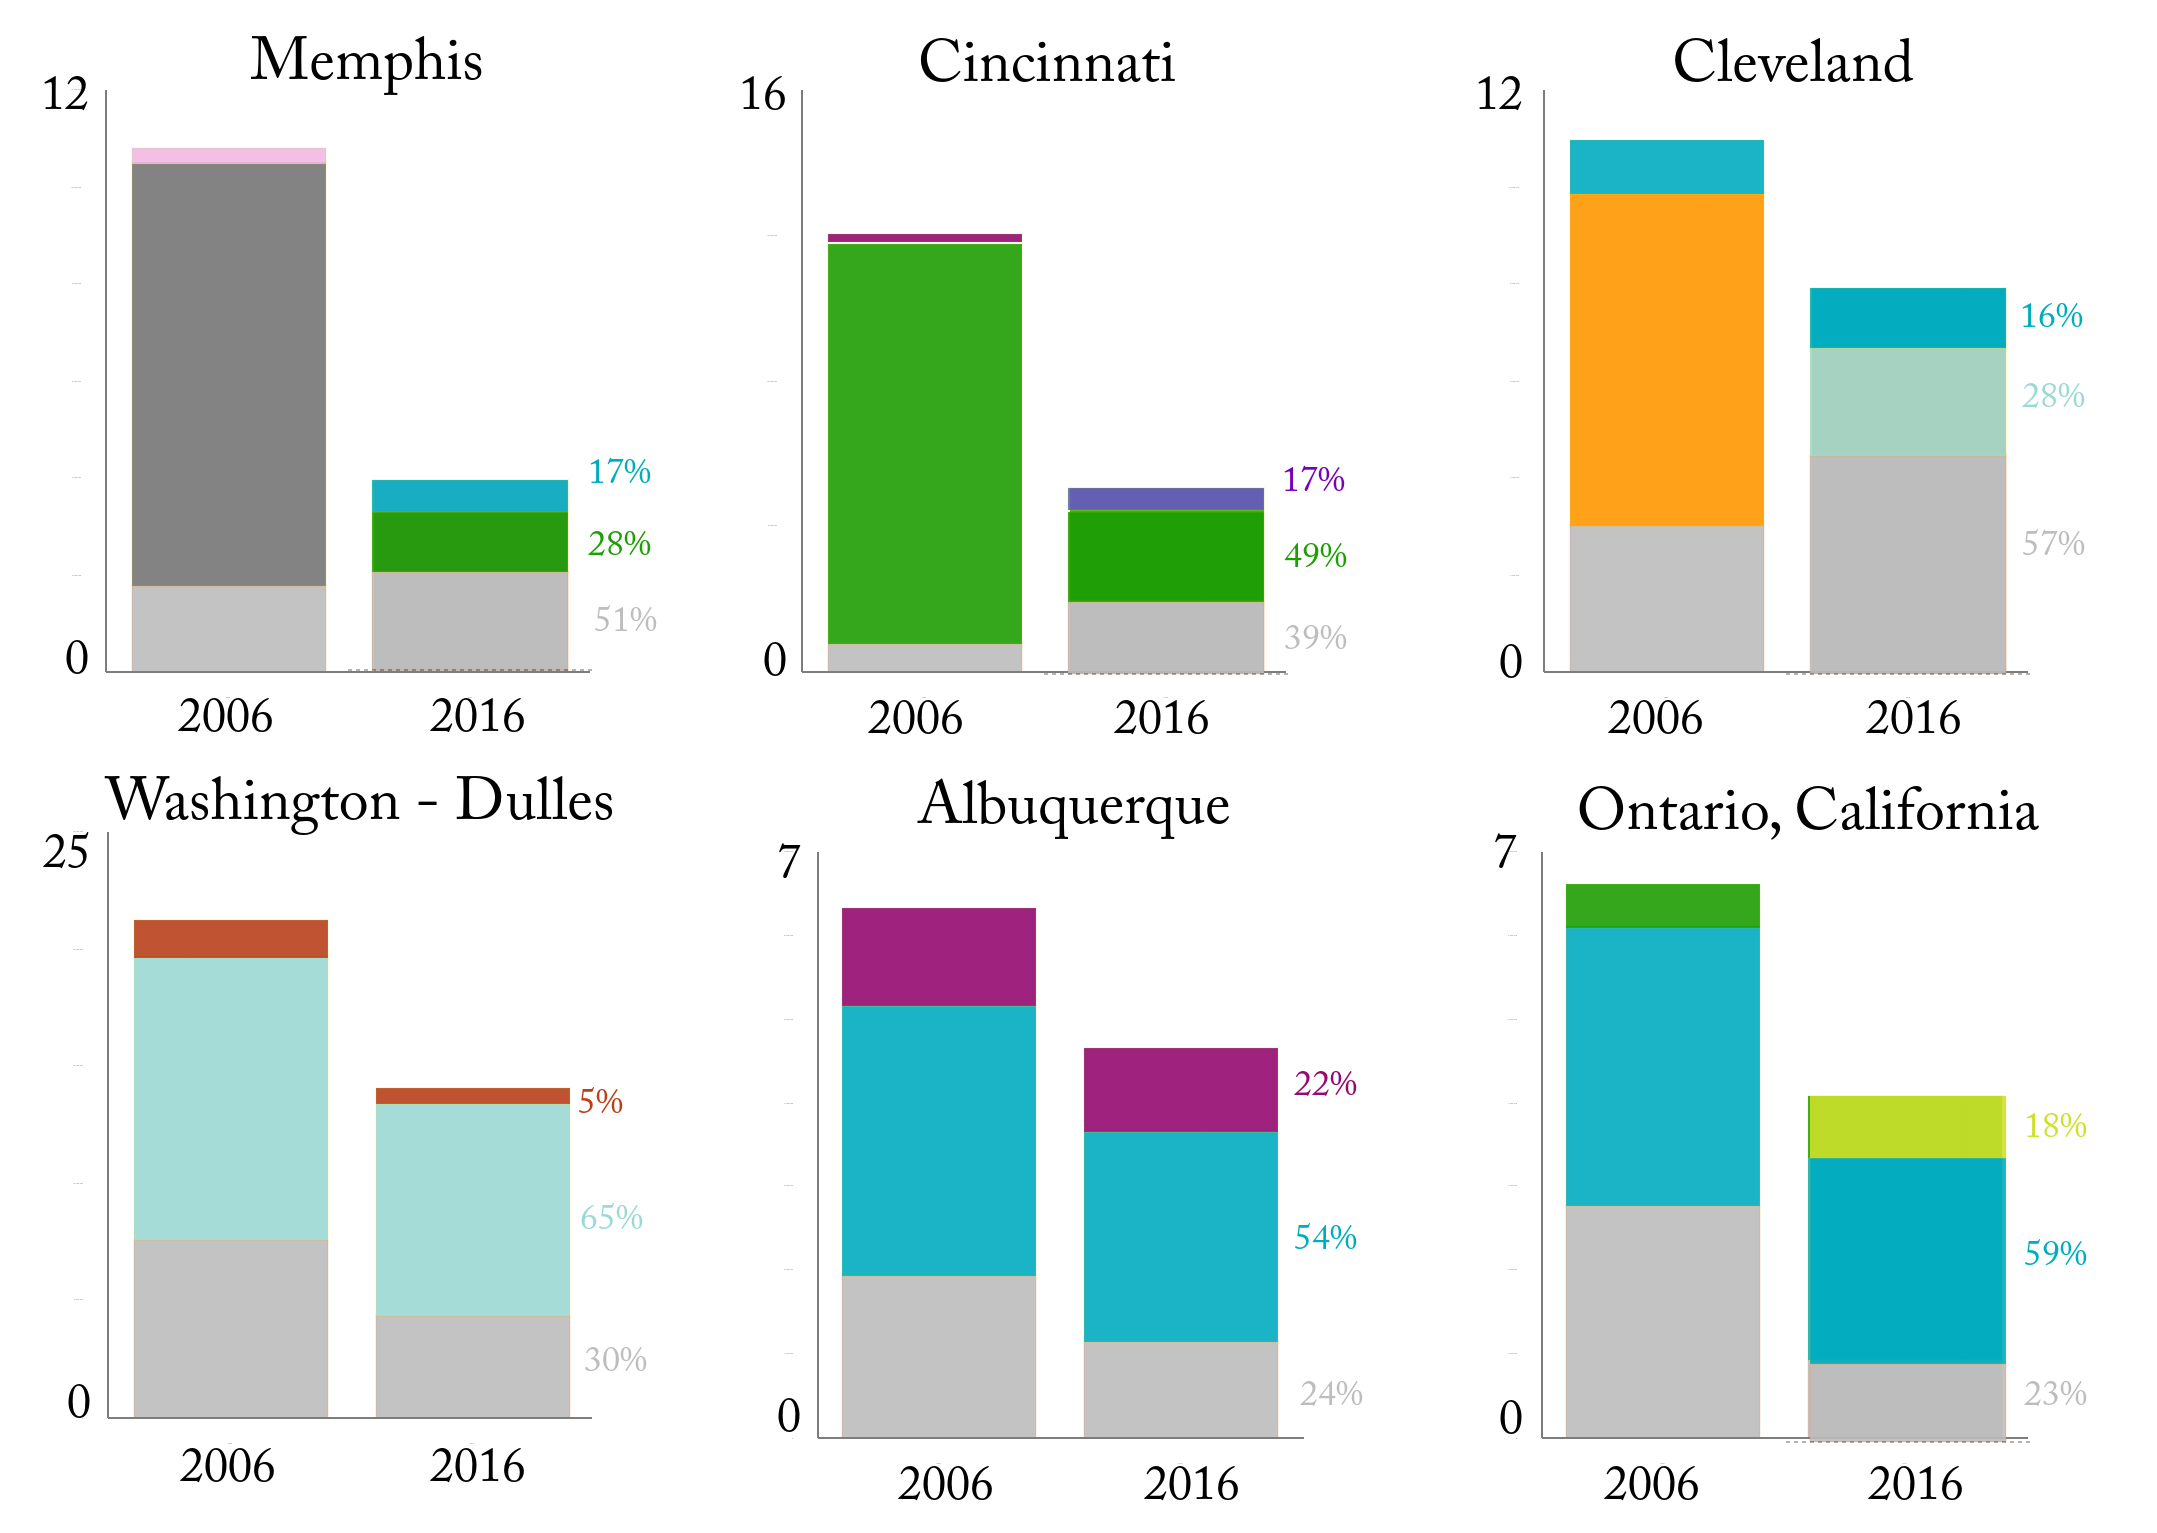 How has air travel in specific metropolitan areas changed for Bureau transportation statistics